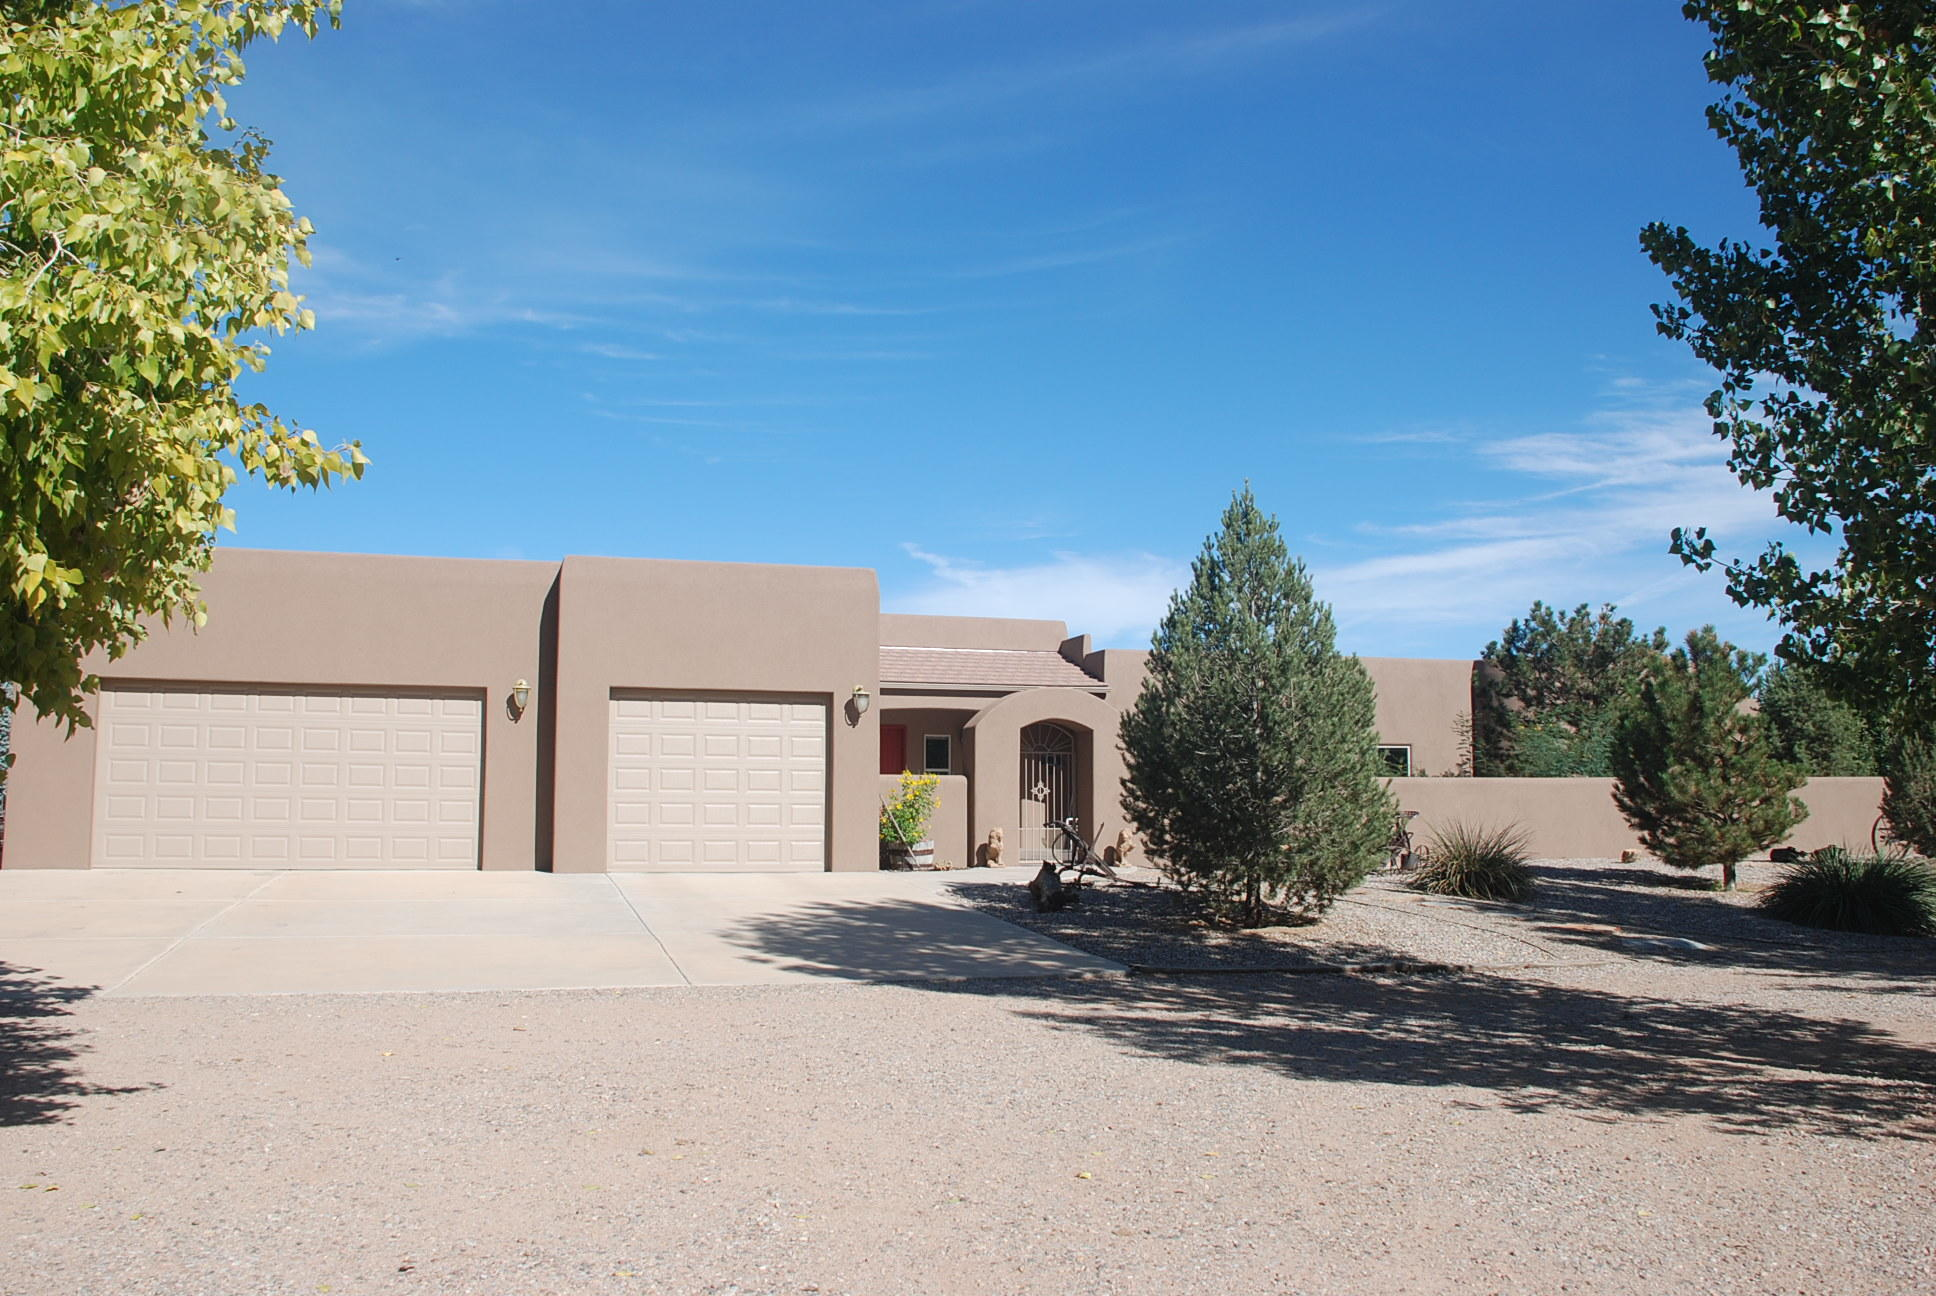 Gorgeous Hacienda. Beautiful Santa Fe Style Home Custom built for Current Owner. No  attention to detail has been spared. Spacious Rooms, Multiple Patios with Wonderful Views, Irrigated Pasture. Attached Garage Plus Detached Workshop with Additional GarageSpace. Well Located on 3 plus  irrigated acres in well established  Rural Area. Be advised:  Advance Appointment is Necessary to See this Property. Click on lower corner of second photo for virtual tour.